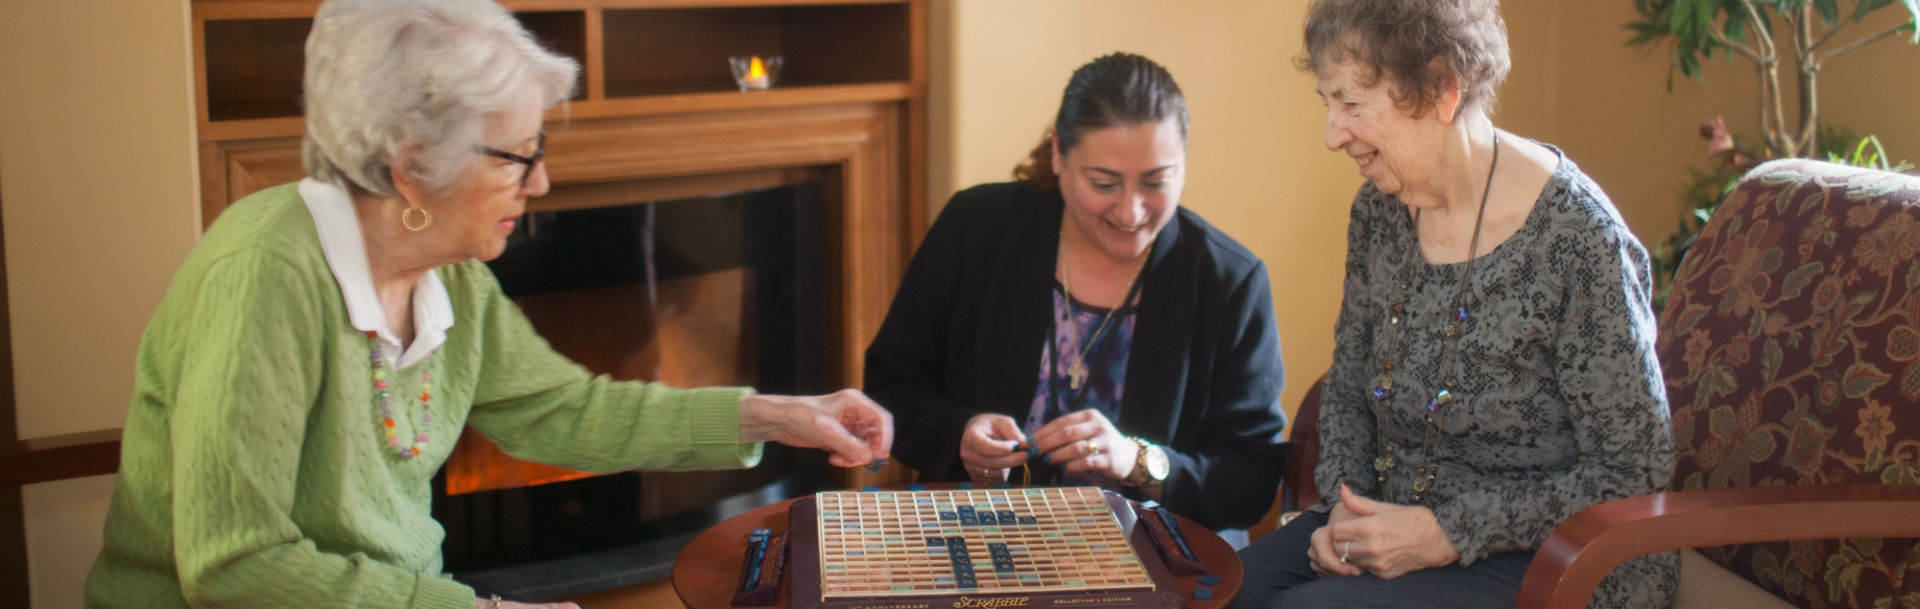 Resident and workers playing a game